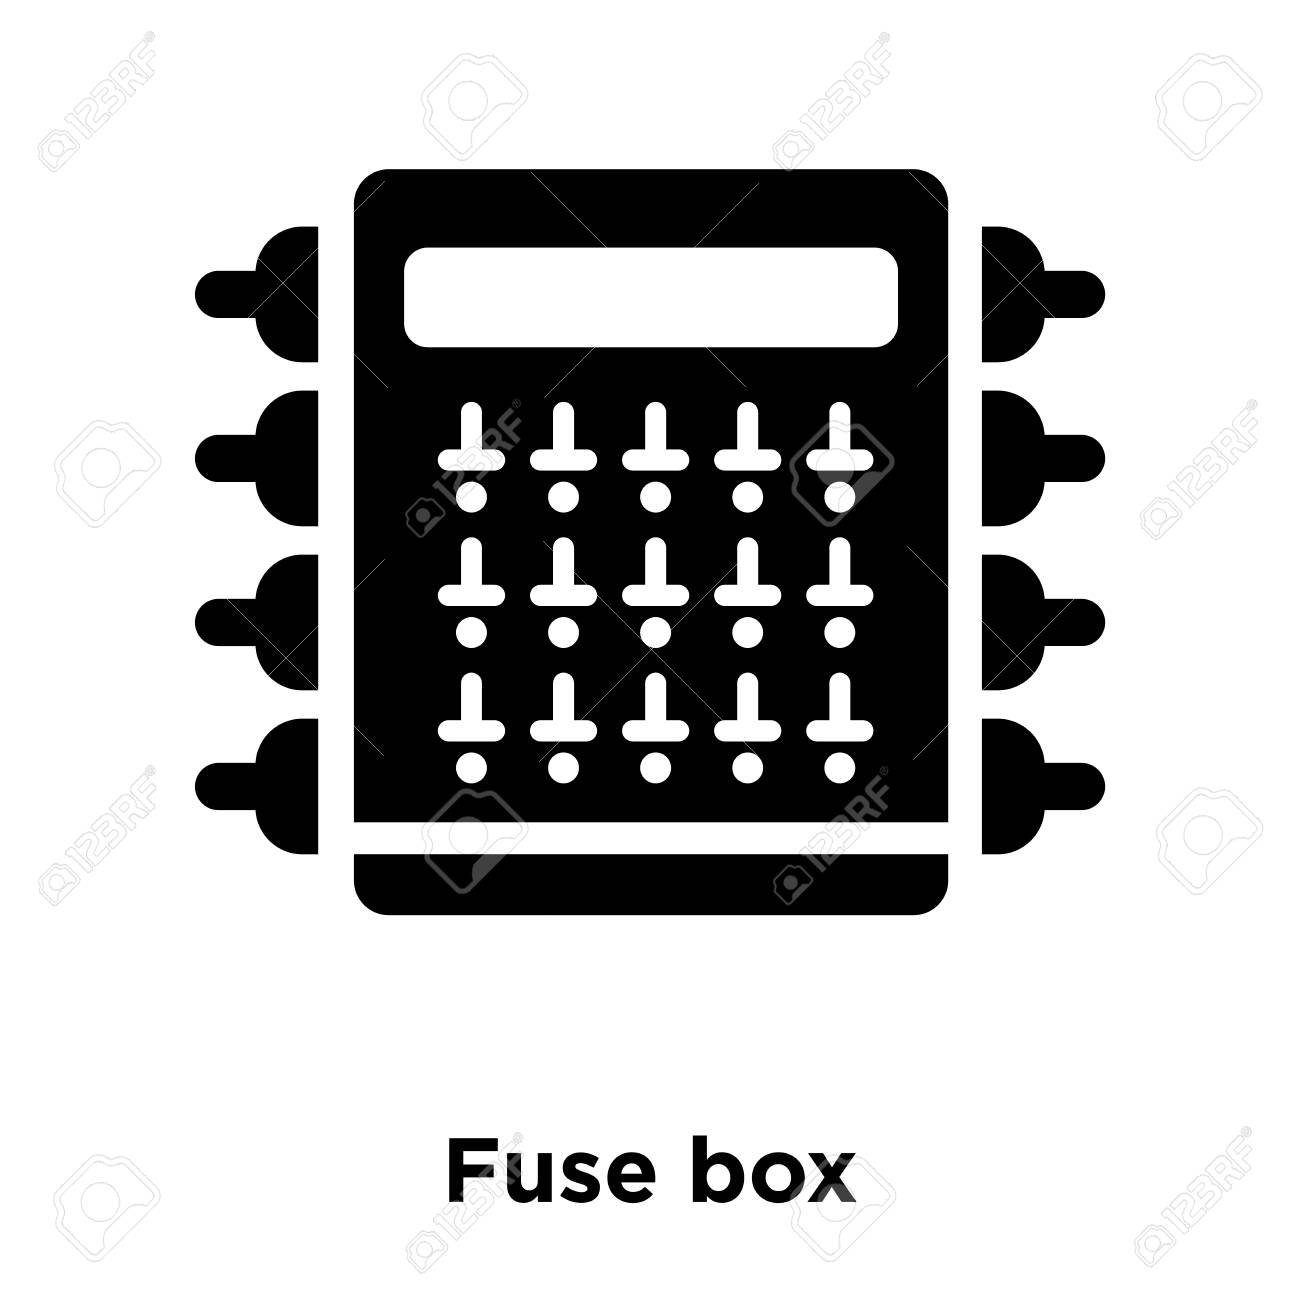 fuse box gateway login wiring diagram review Layout for Hexagonal Box